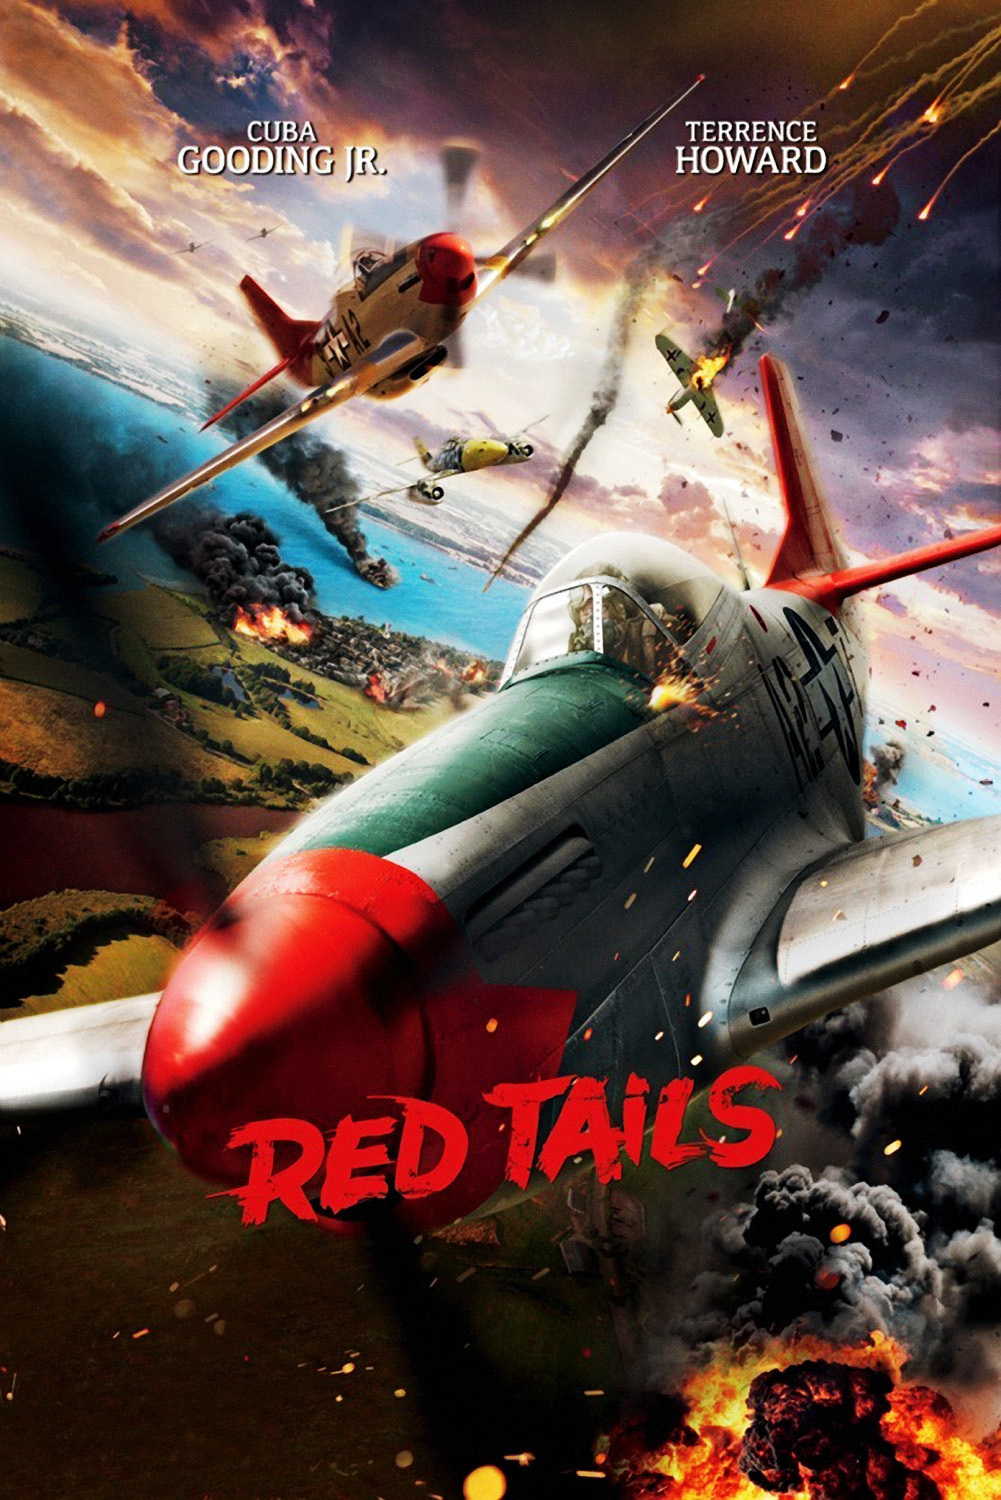 Red Tails – Rather mediocre Hollywood creation